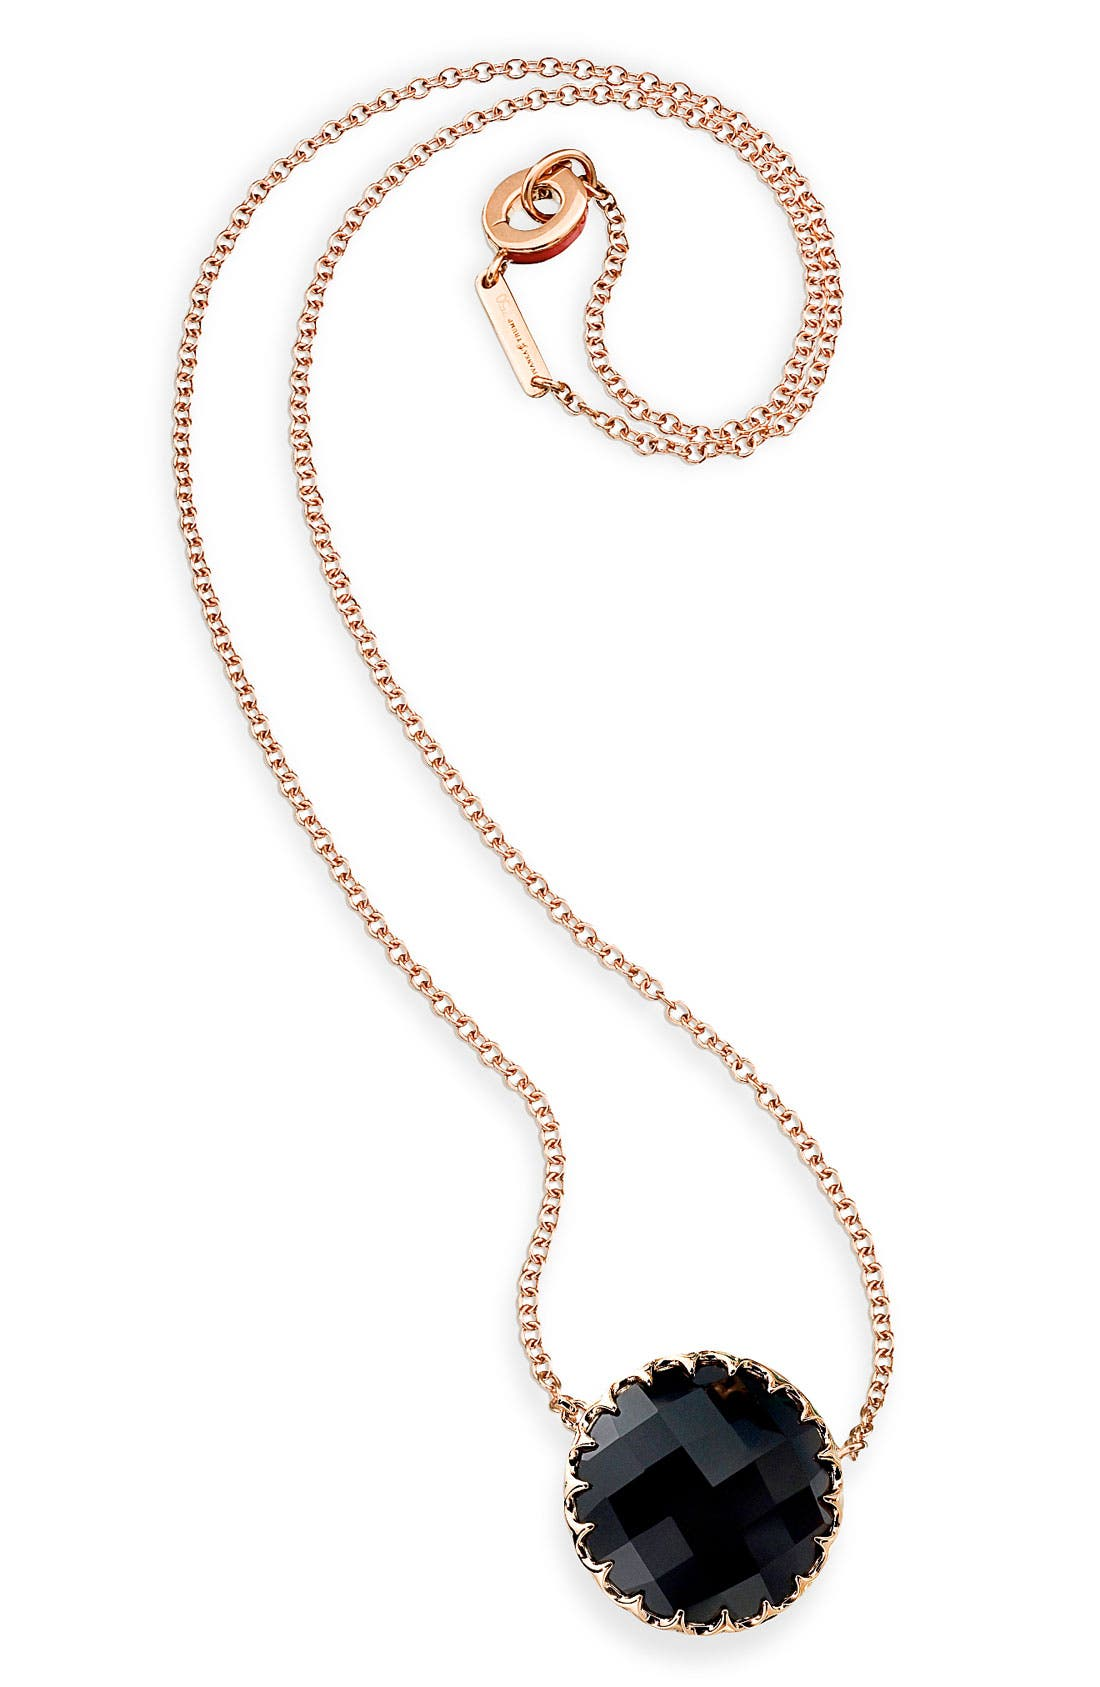 Main Image - Ivanka Trump Rose Gold & Center Stone Necklace